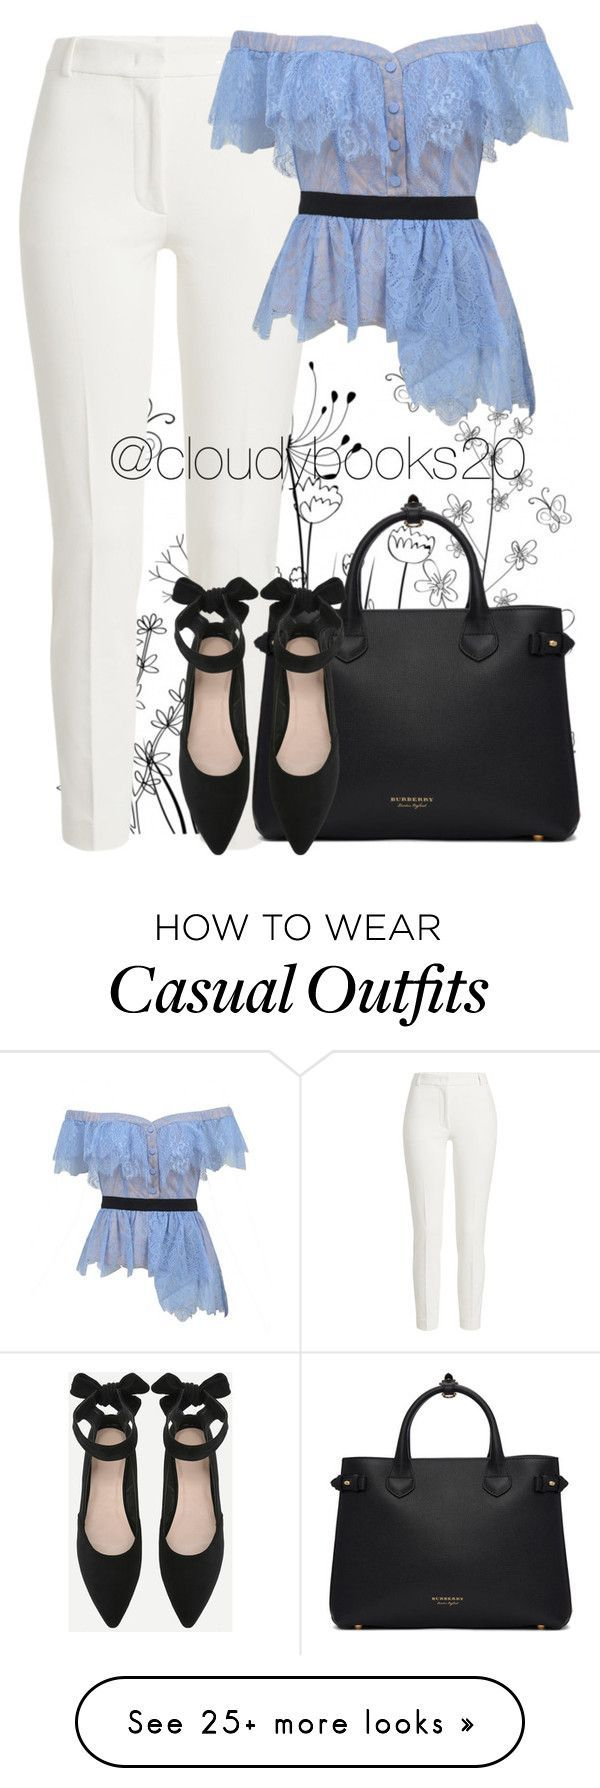 """Semi Casual Day"" by cloudybooks on Polyvore featuring Joseph, self-portrait and Burberry - https://sorihe.com/adidas/2018/02/19/semi-casual-day-by-cloudybooks-on-polyvore-featuring-joseph-self-portrait-and-burberry/"